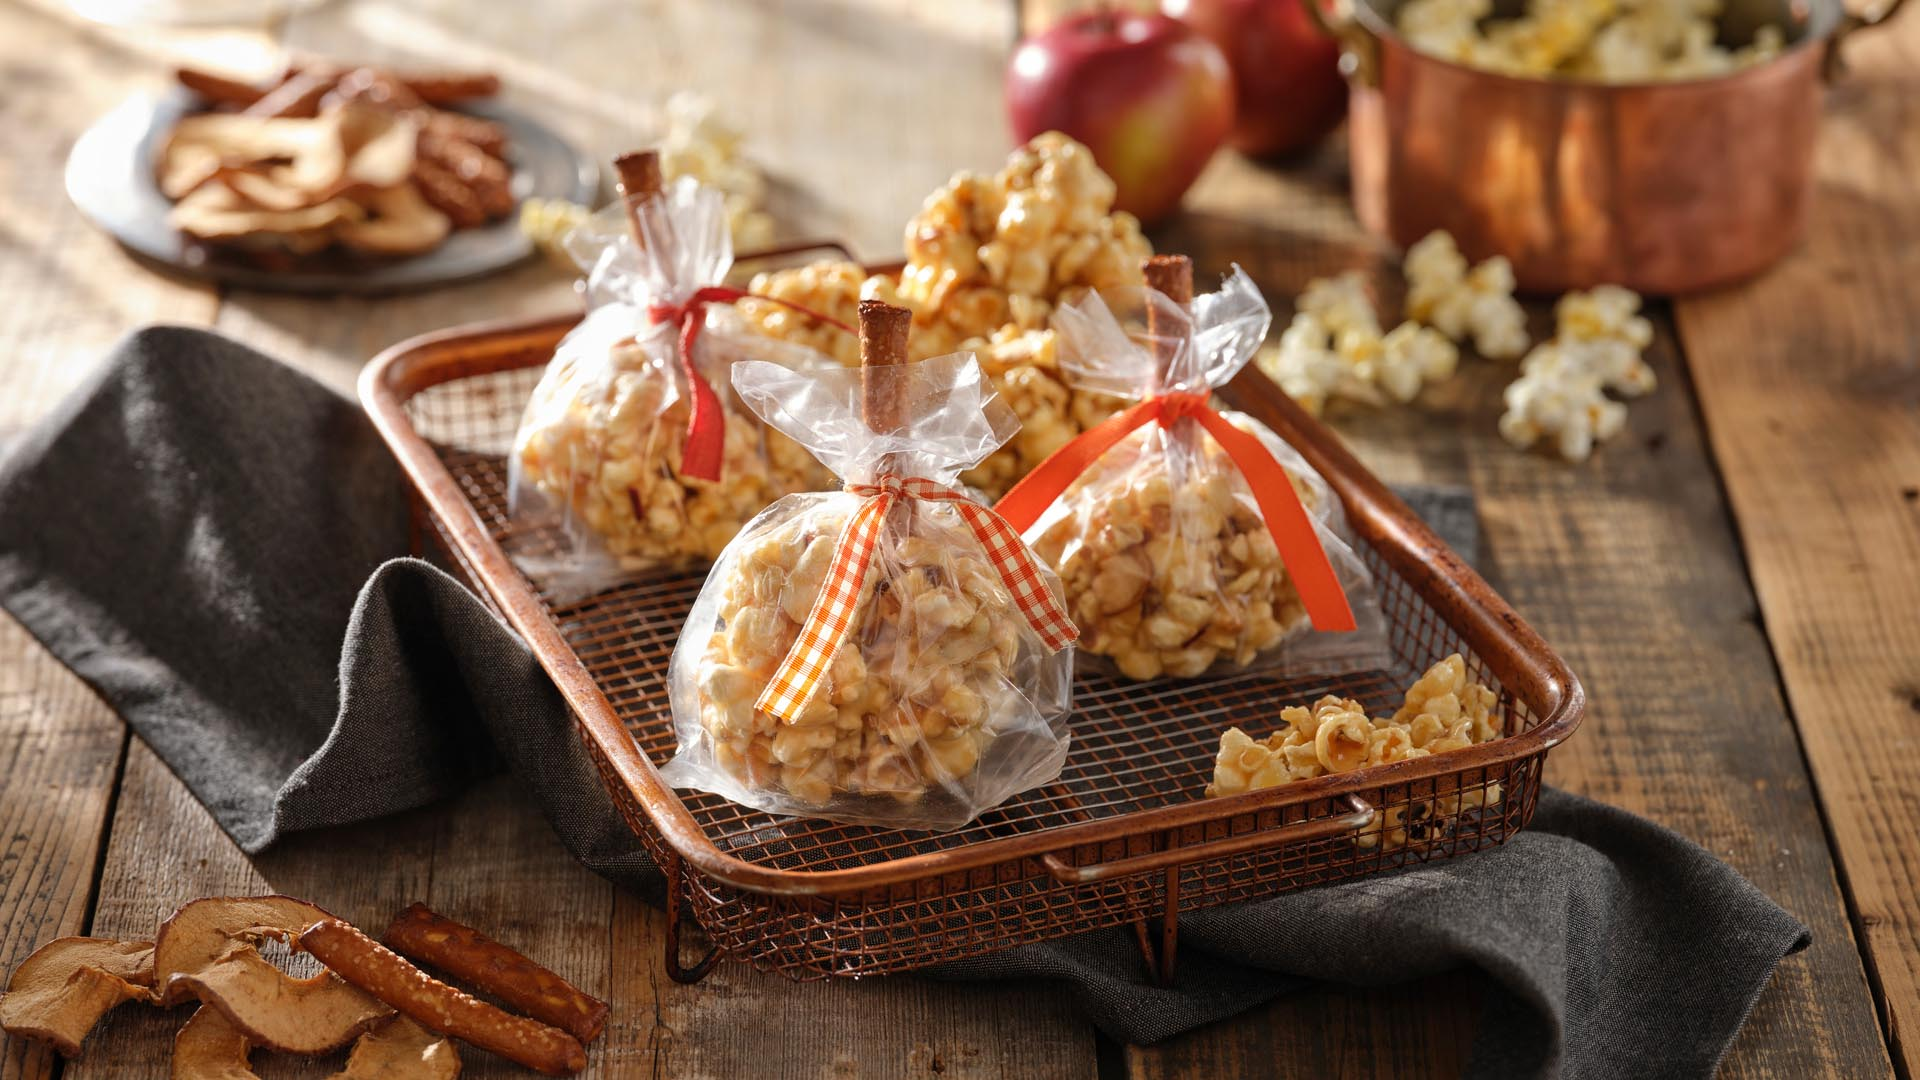 3 Caramel popcorn balls with pretzel stick handles wrapped in plastic tied with white and red checkered ribbons on a metal serving tray